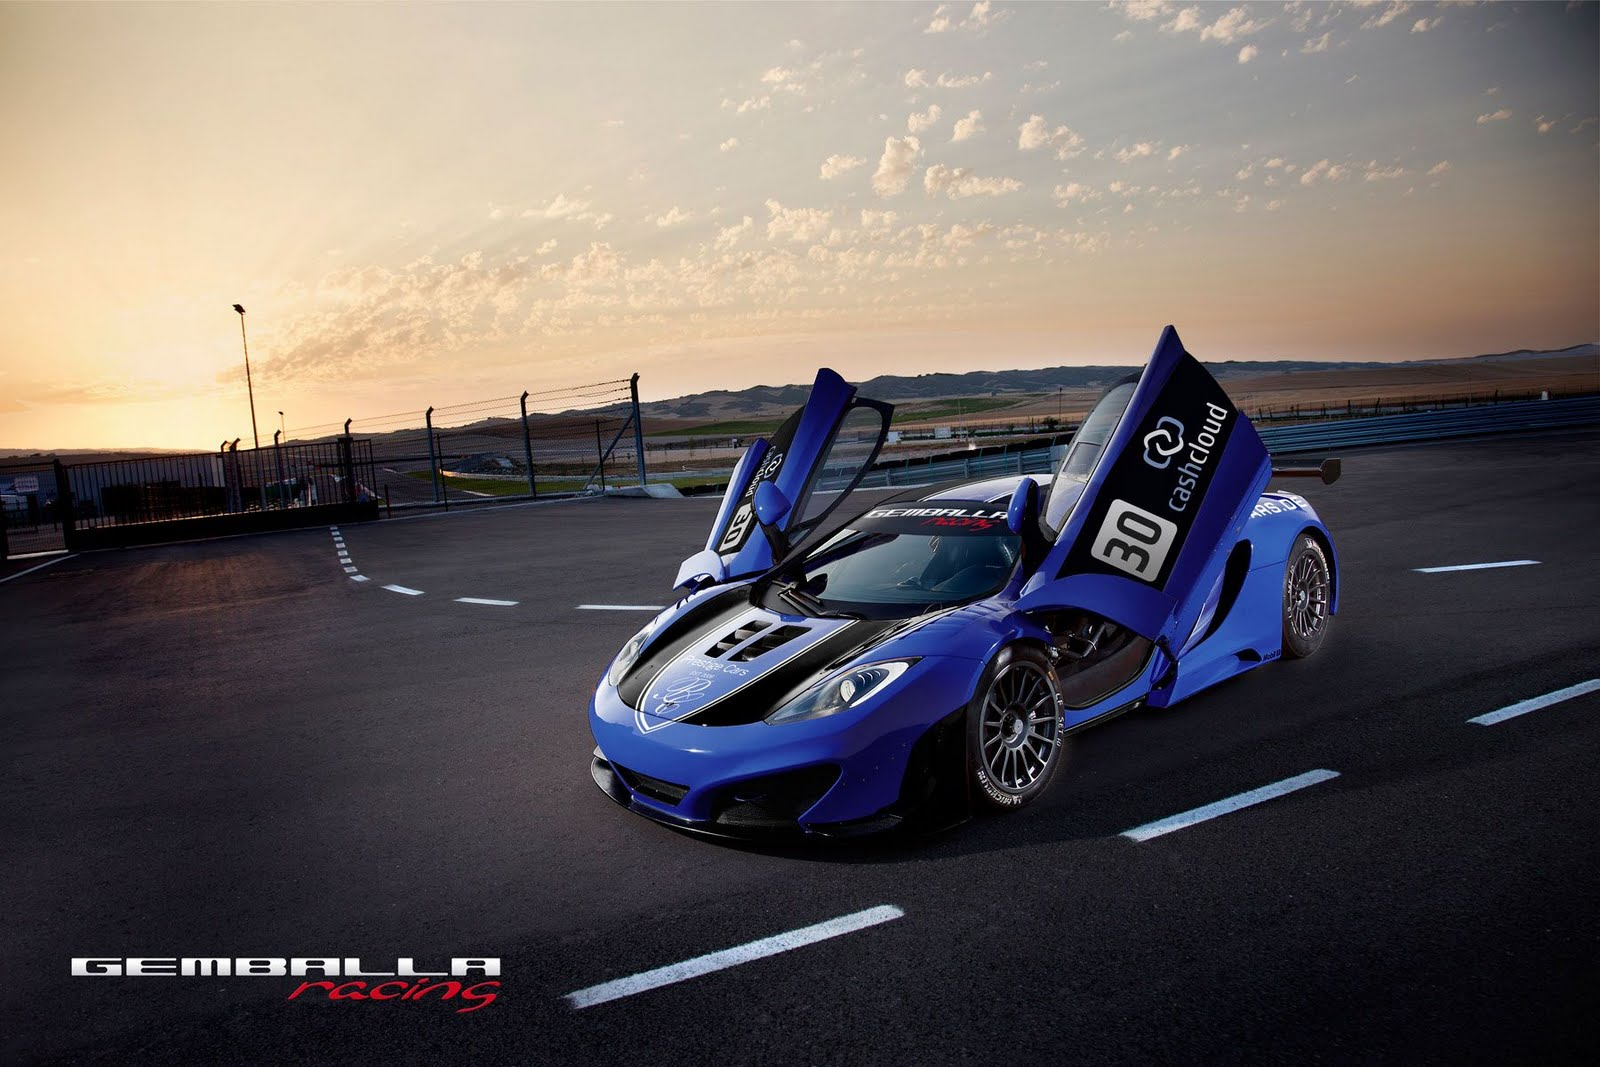 Gemballa racing McLaren MP4 12C GT3 1 Gemballa to Launch McLaren MP4 12C GT3 Models